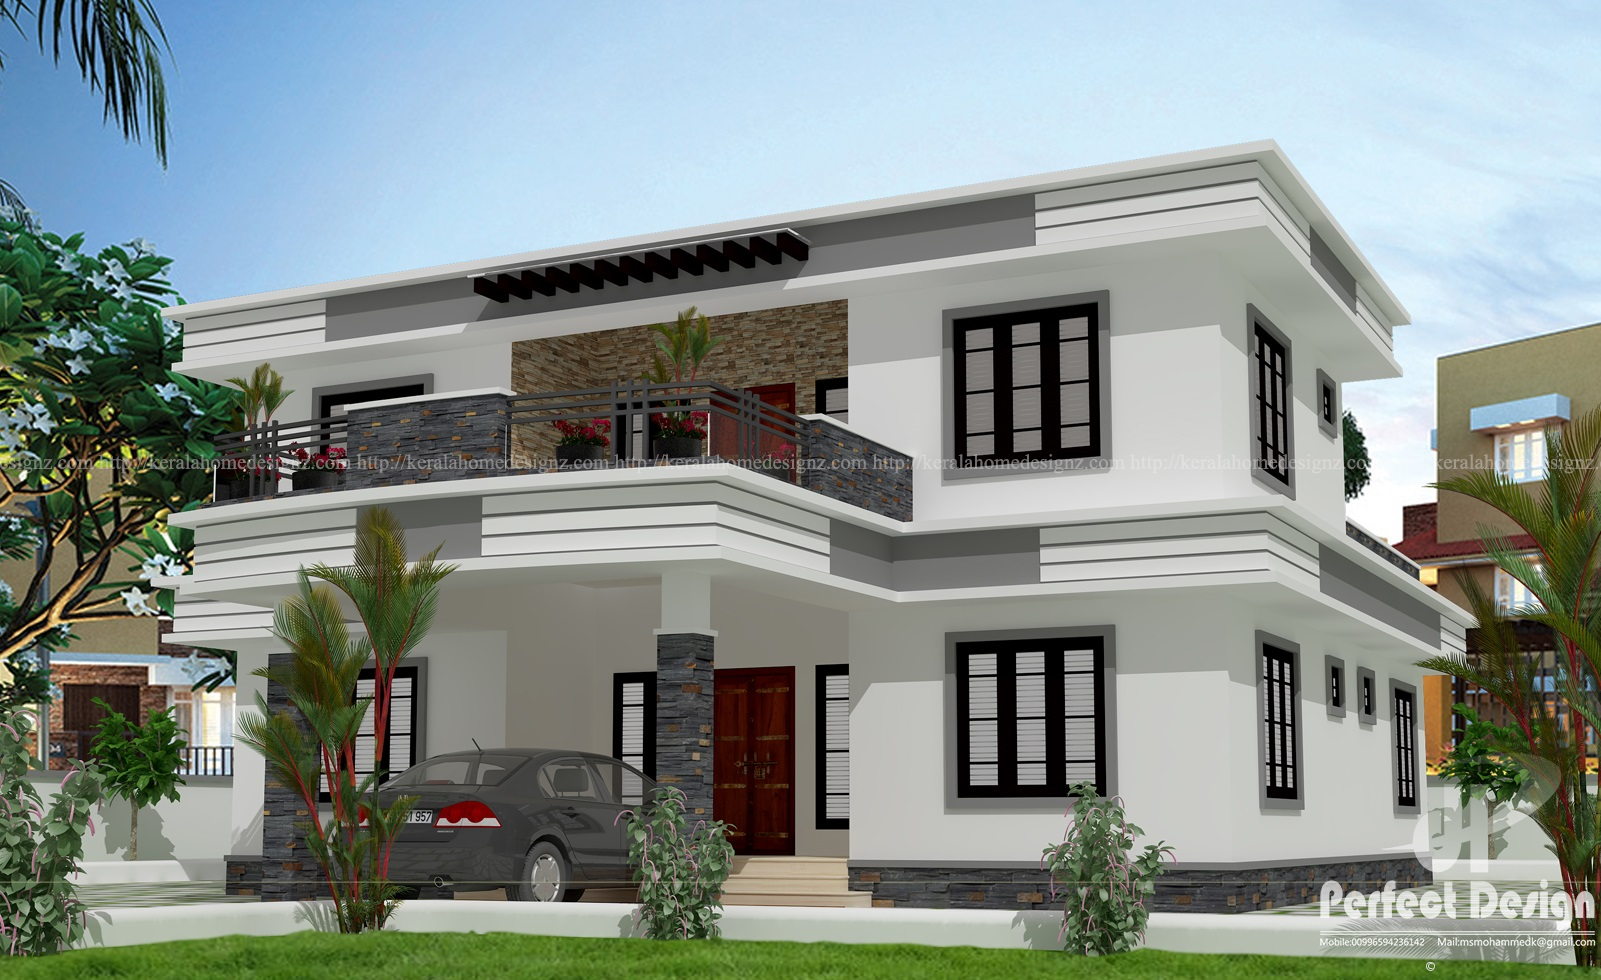 Good Design Houses Kerala